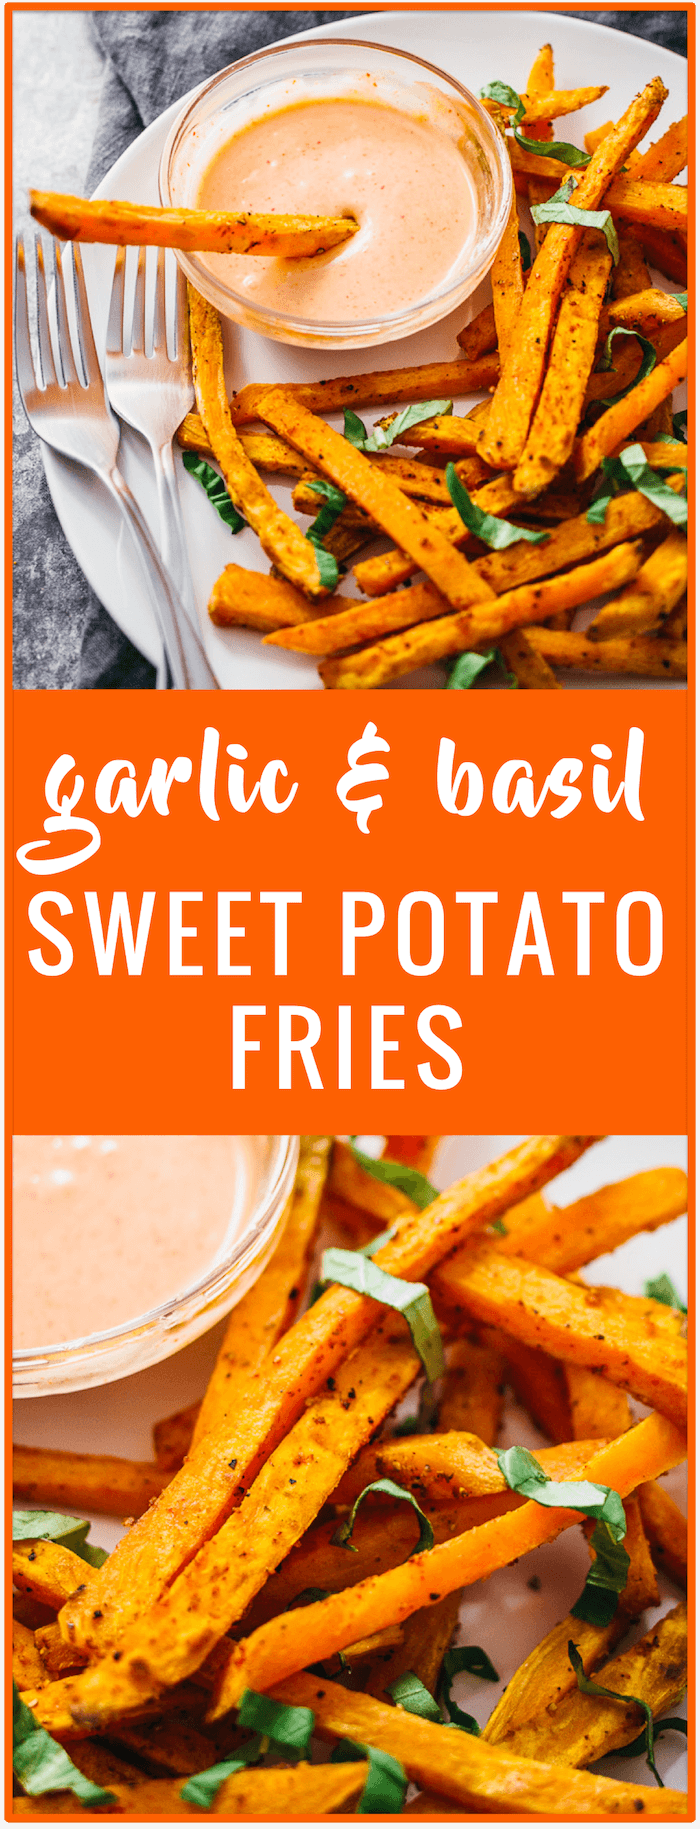 Garlic and basil sweet potato fries recipe - These healthy sweet potato fries are seasoned with garlic and basil, and baked in the oven until crispy. They are served with a spicy sriracha mayo dipping sauce.